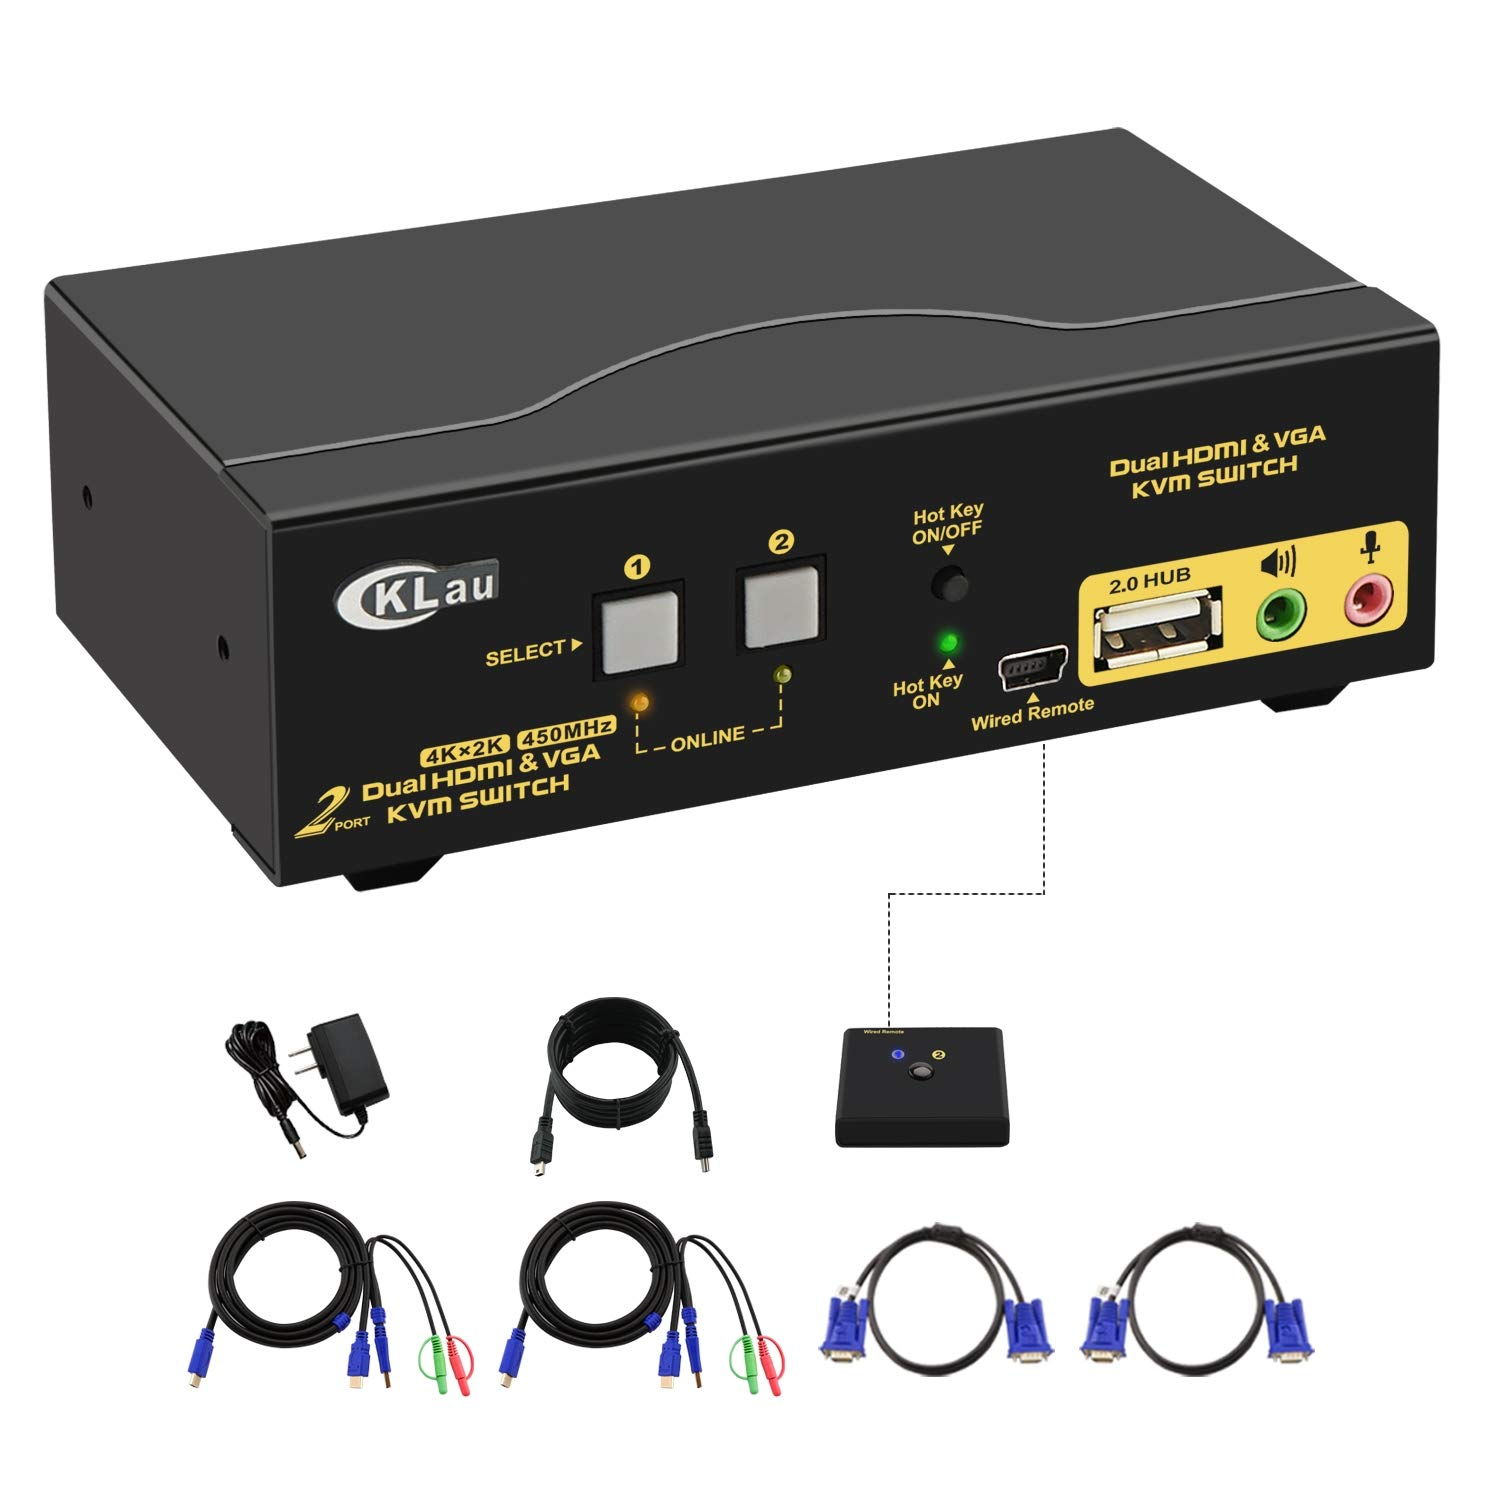 CKLau 2 Port Dual Monitor KVM Switch HDMI + VGA with Audio, Microphone, USB 2.0 Hub and Cables Support 4Kx2K@30Hz by CKLau